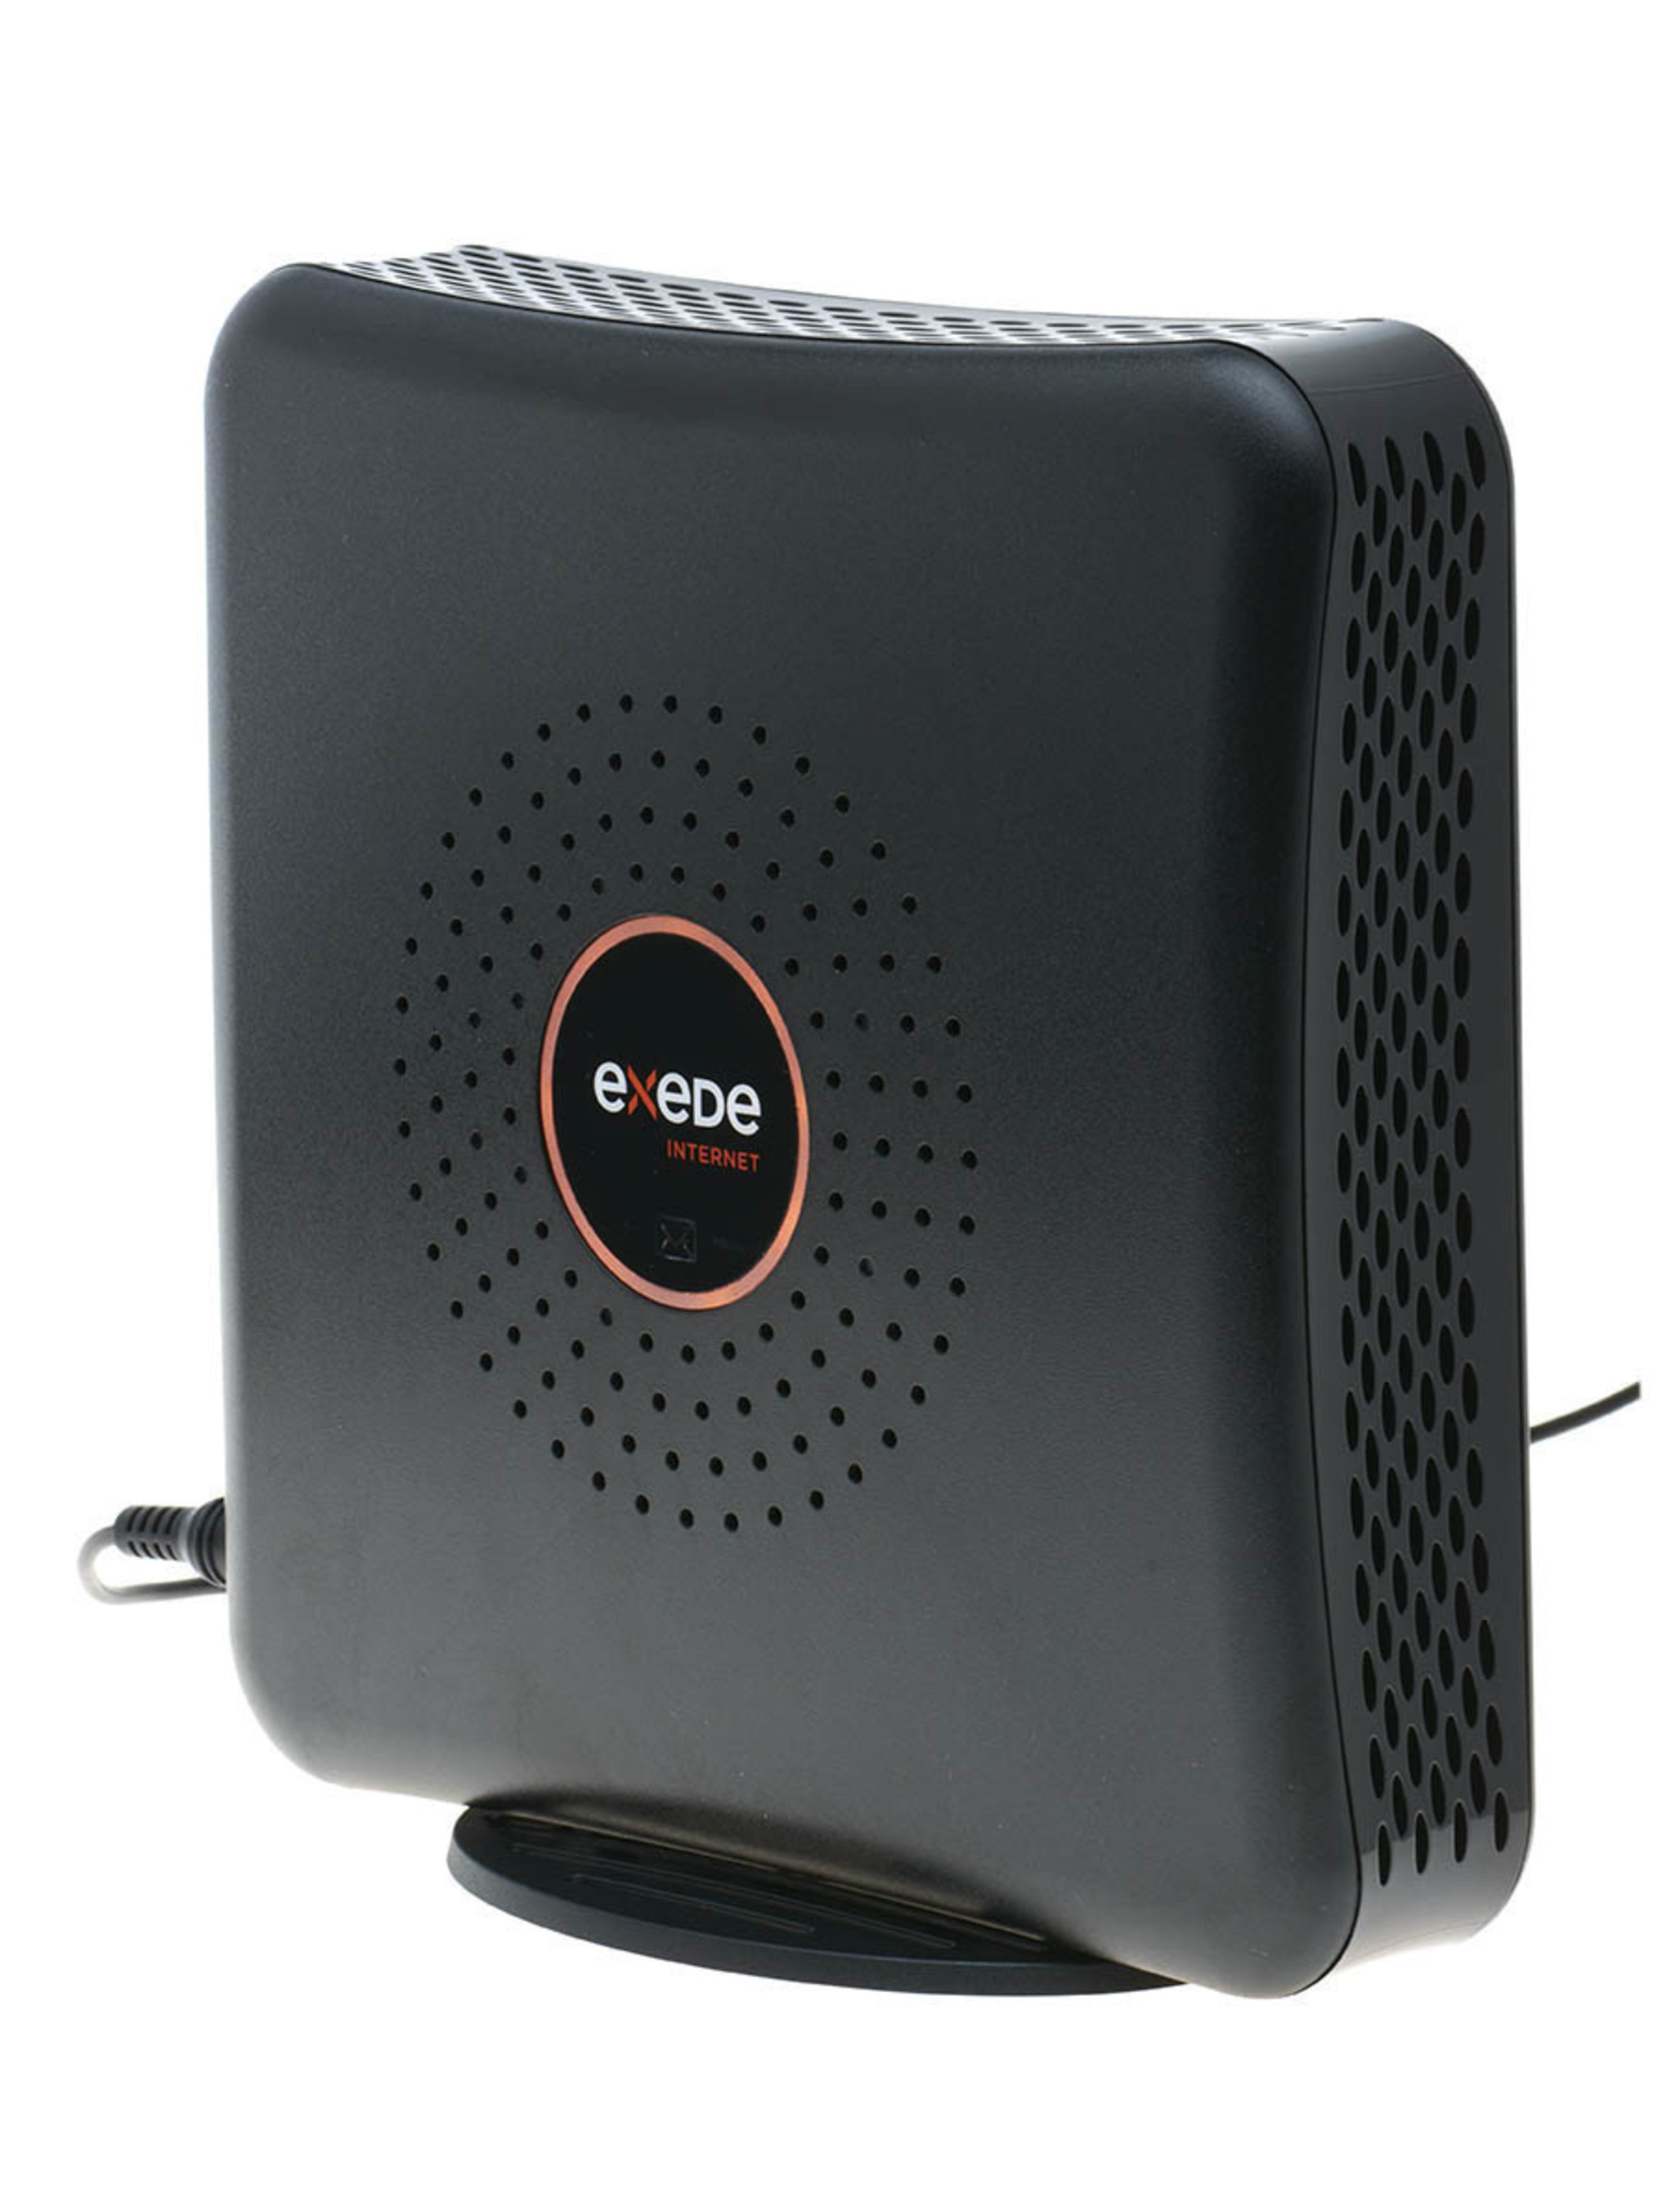 ViaSat Unveils Fastest Home Satellite Internet Service in the U.S. with its New Exede WiFi Modem, Delivering Download Speeds Up To 25 Mbps